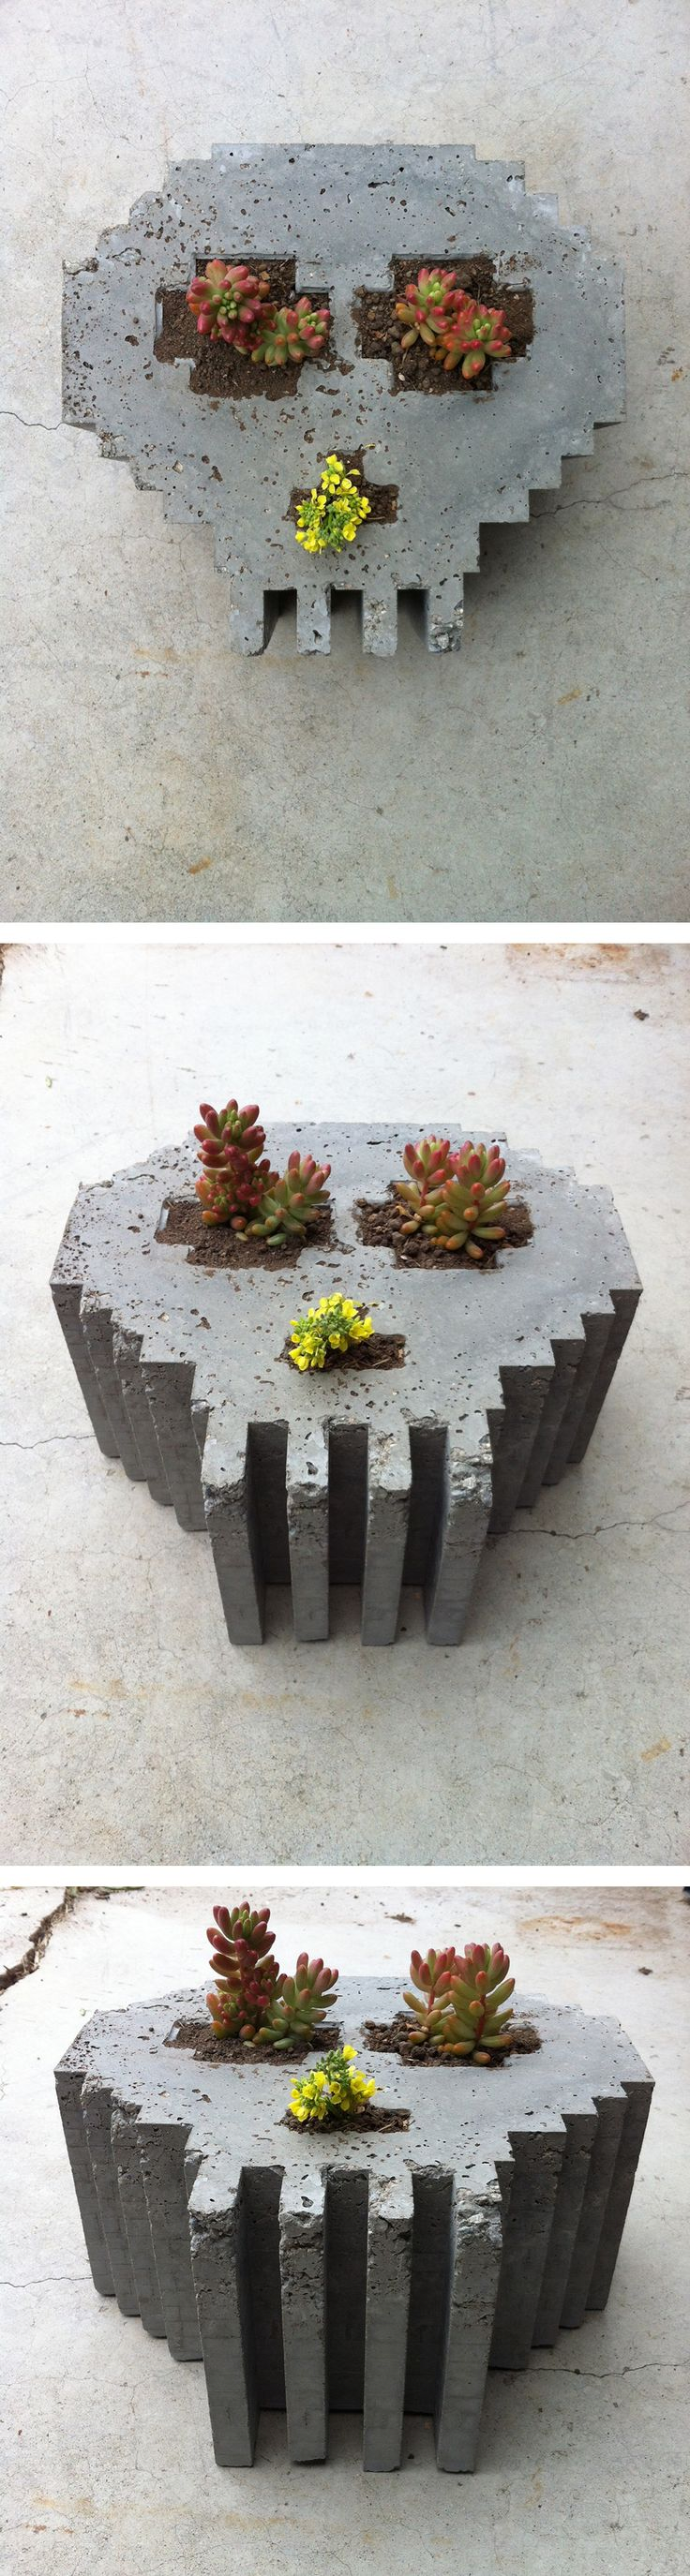 Concrete planters are quick and fun projects to make. Check out the site for instructions: http://www.homemade-modern.com/ep33-8-bit-concrete-skull-planter/